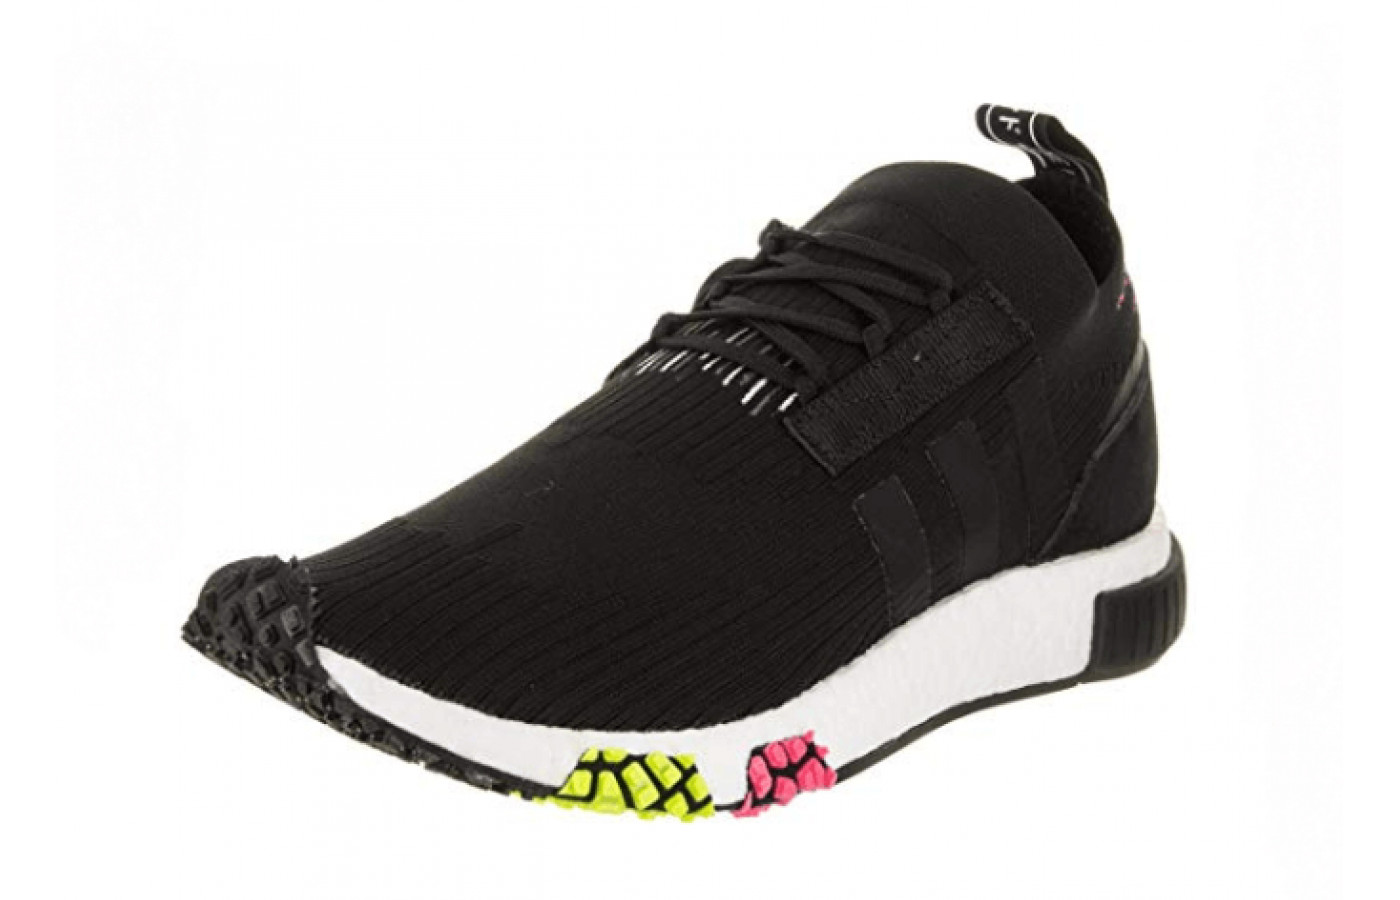 d1ba3d32e97 Adidas NMD Racer Primeknit - To Buy or Not in May 2019